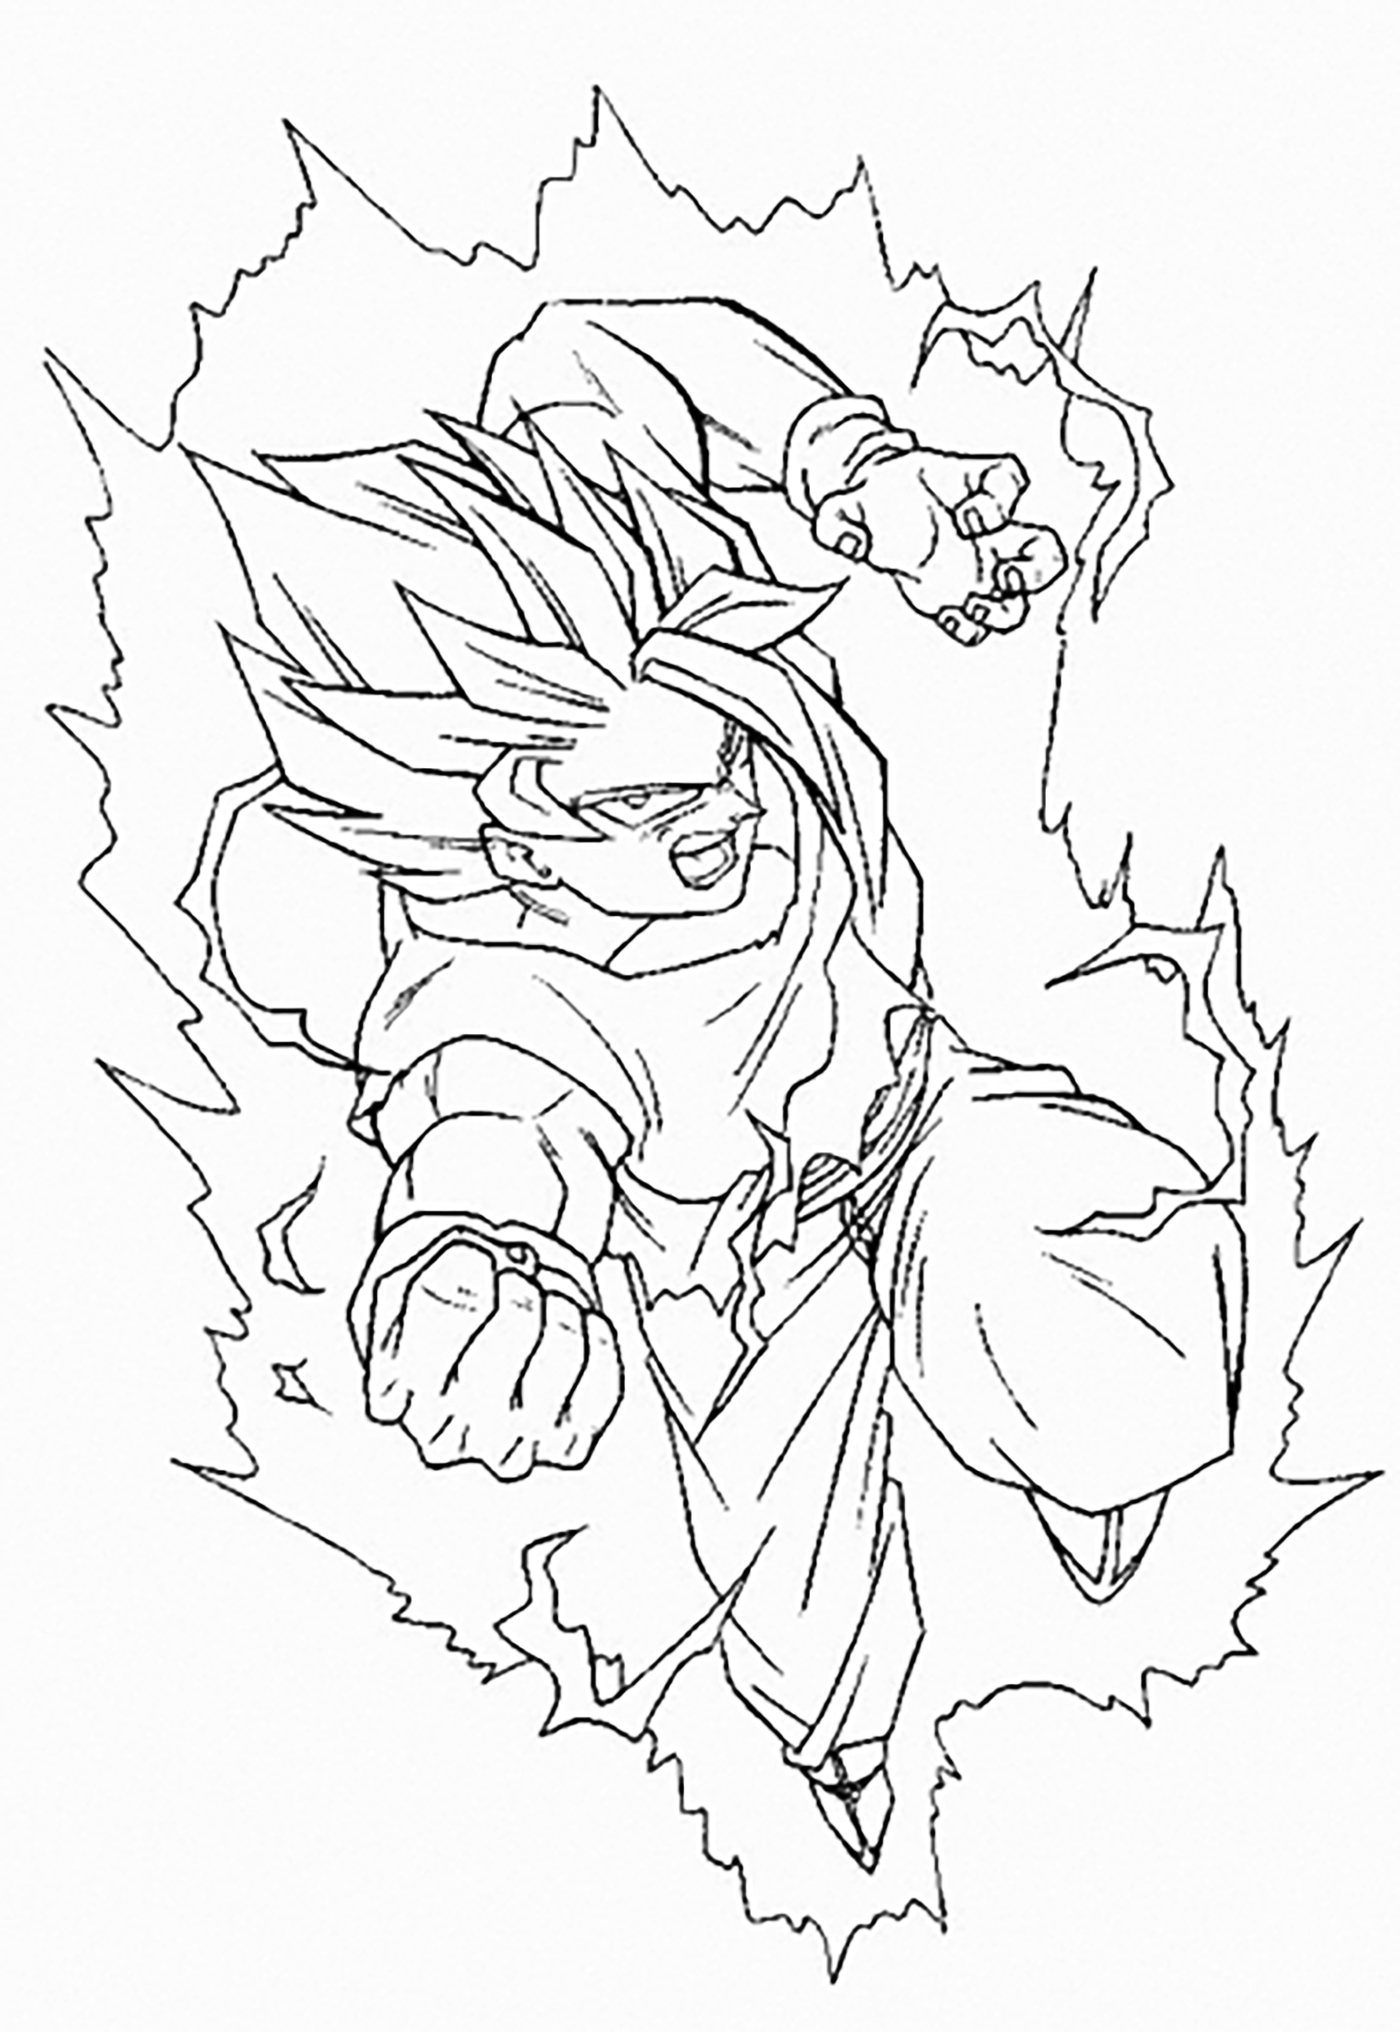 Facile dragon ball goku super saiyan 2 contre buu coloriage dragon ball z coloriages pour - Dessin dragon ball z facile ...